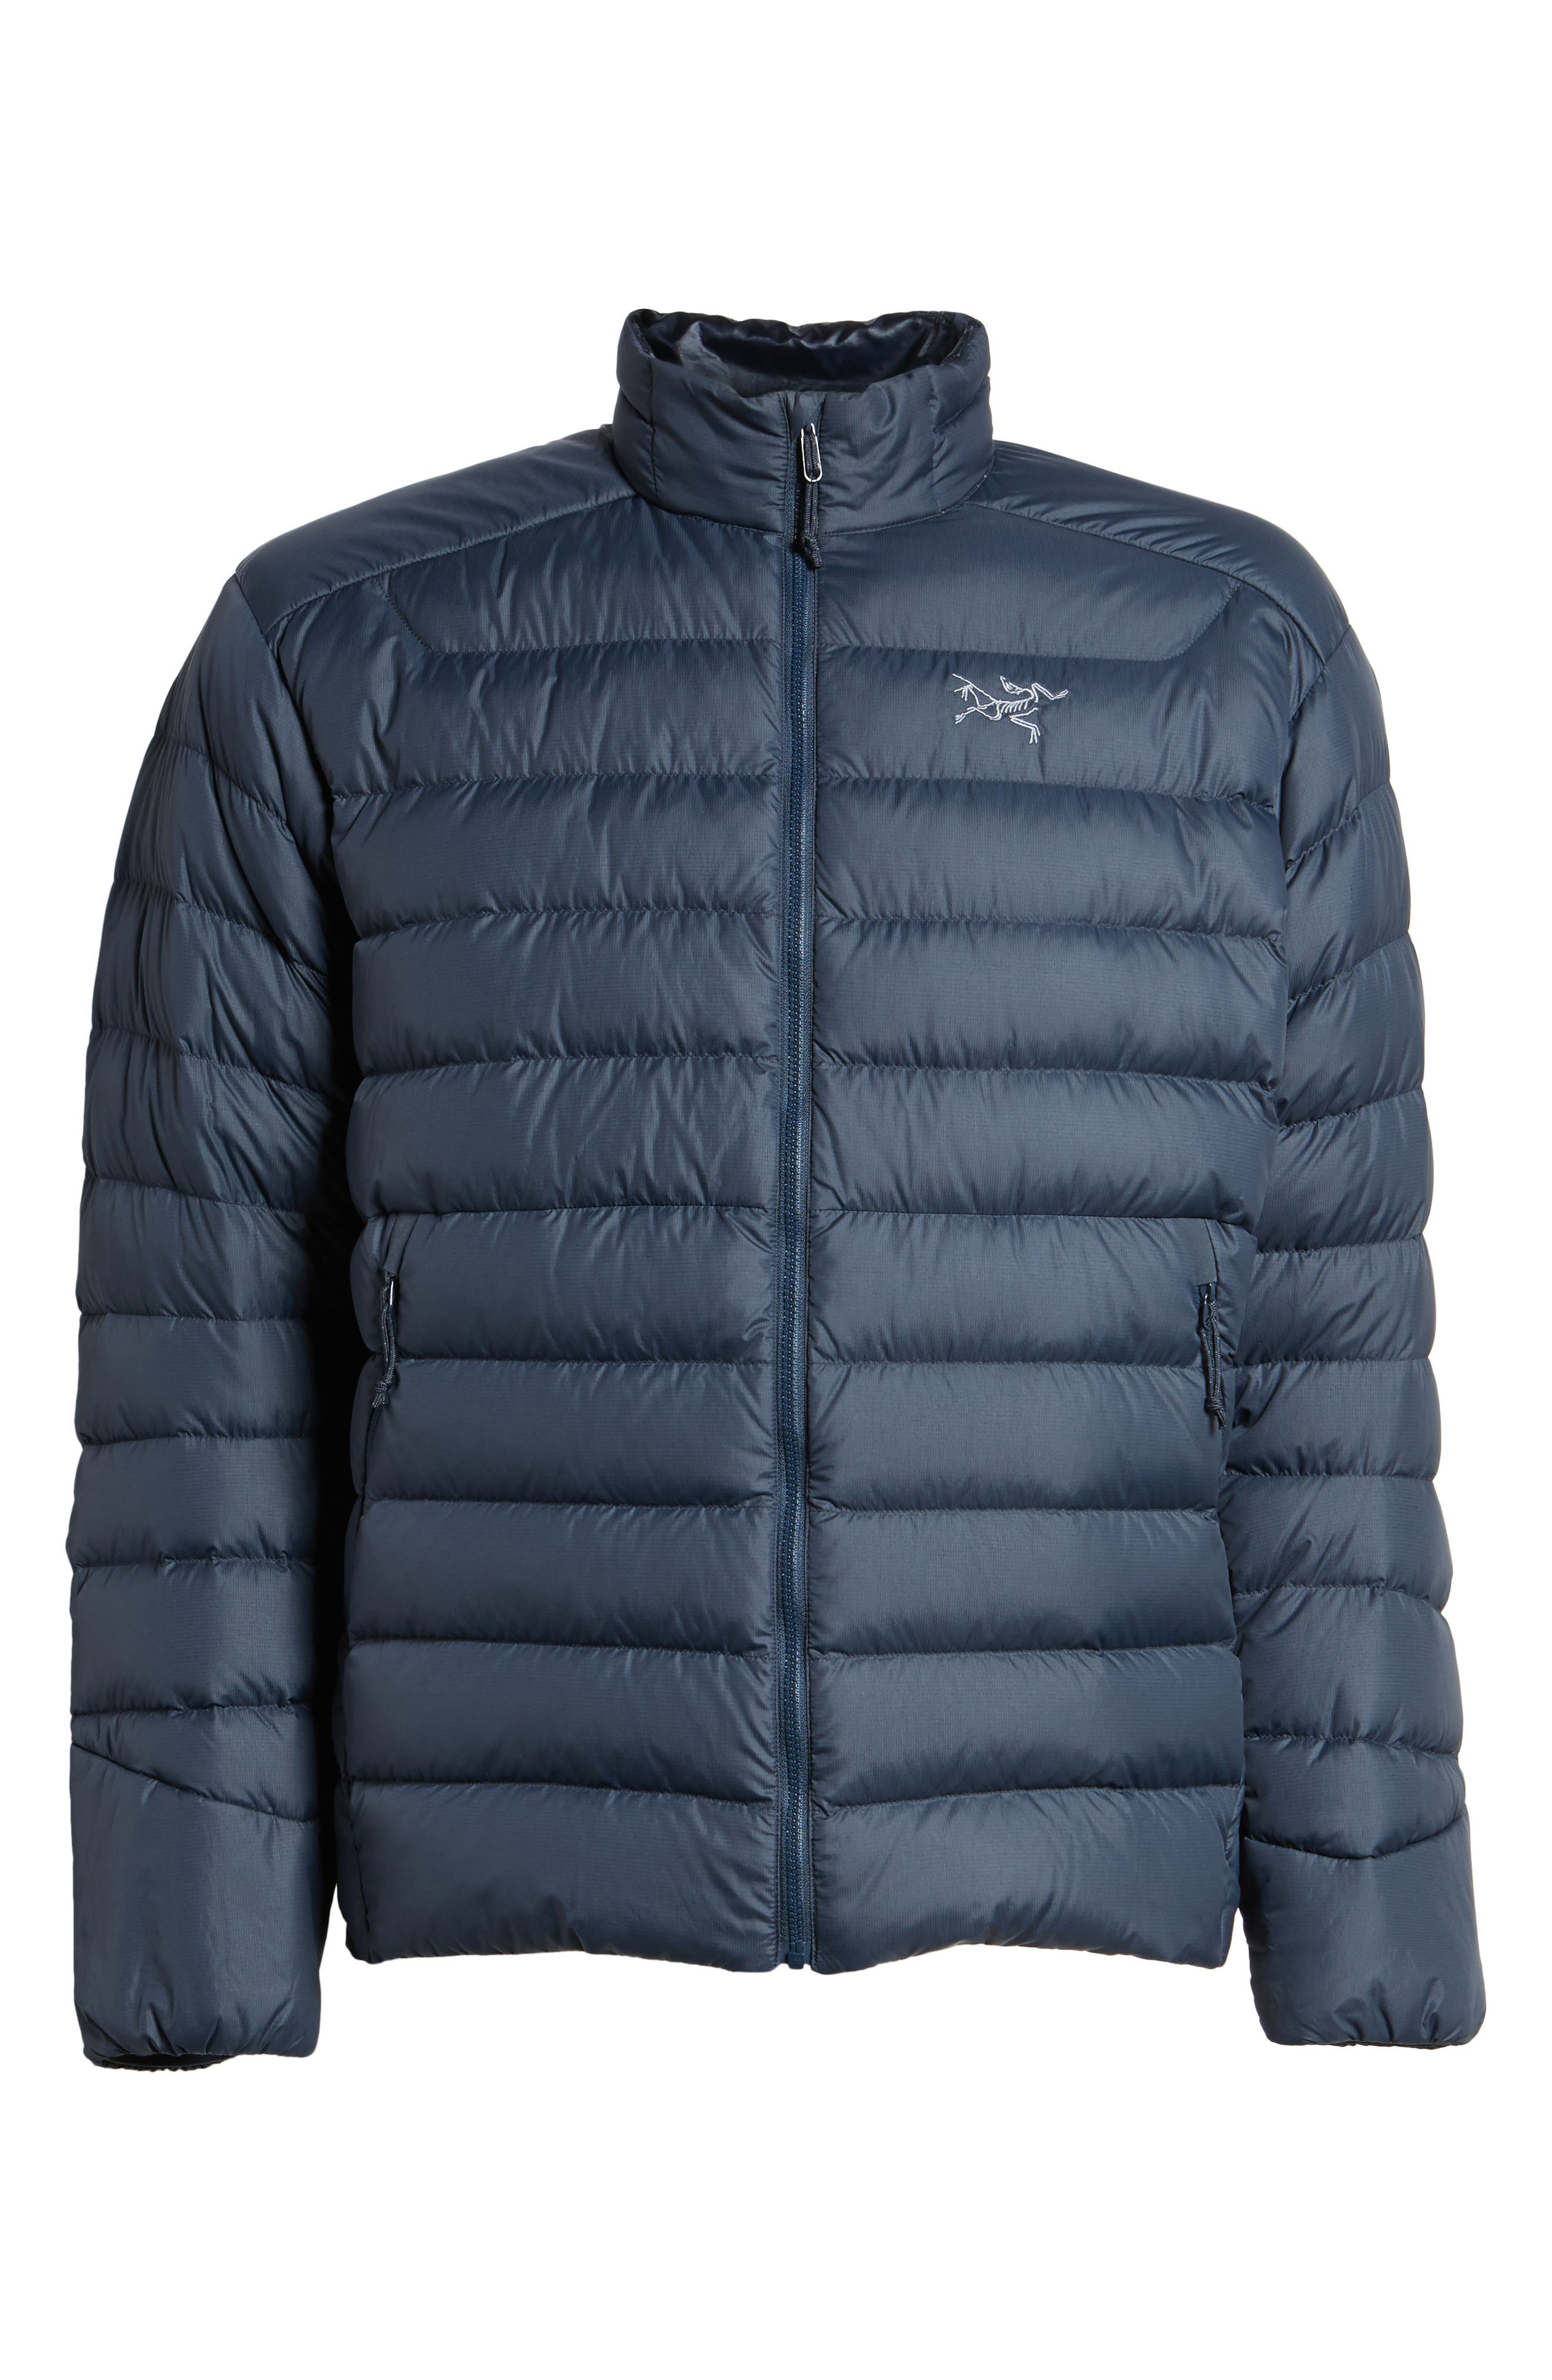 Thorium AR Water Resistant 750 Fill Power Down Jacket,                             Alternate thumbnail 5, color,                             400